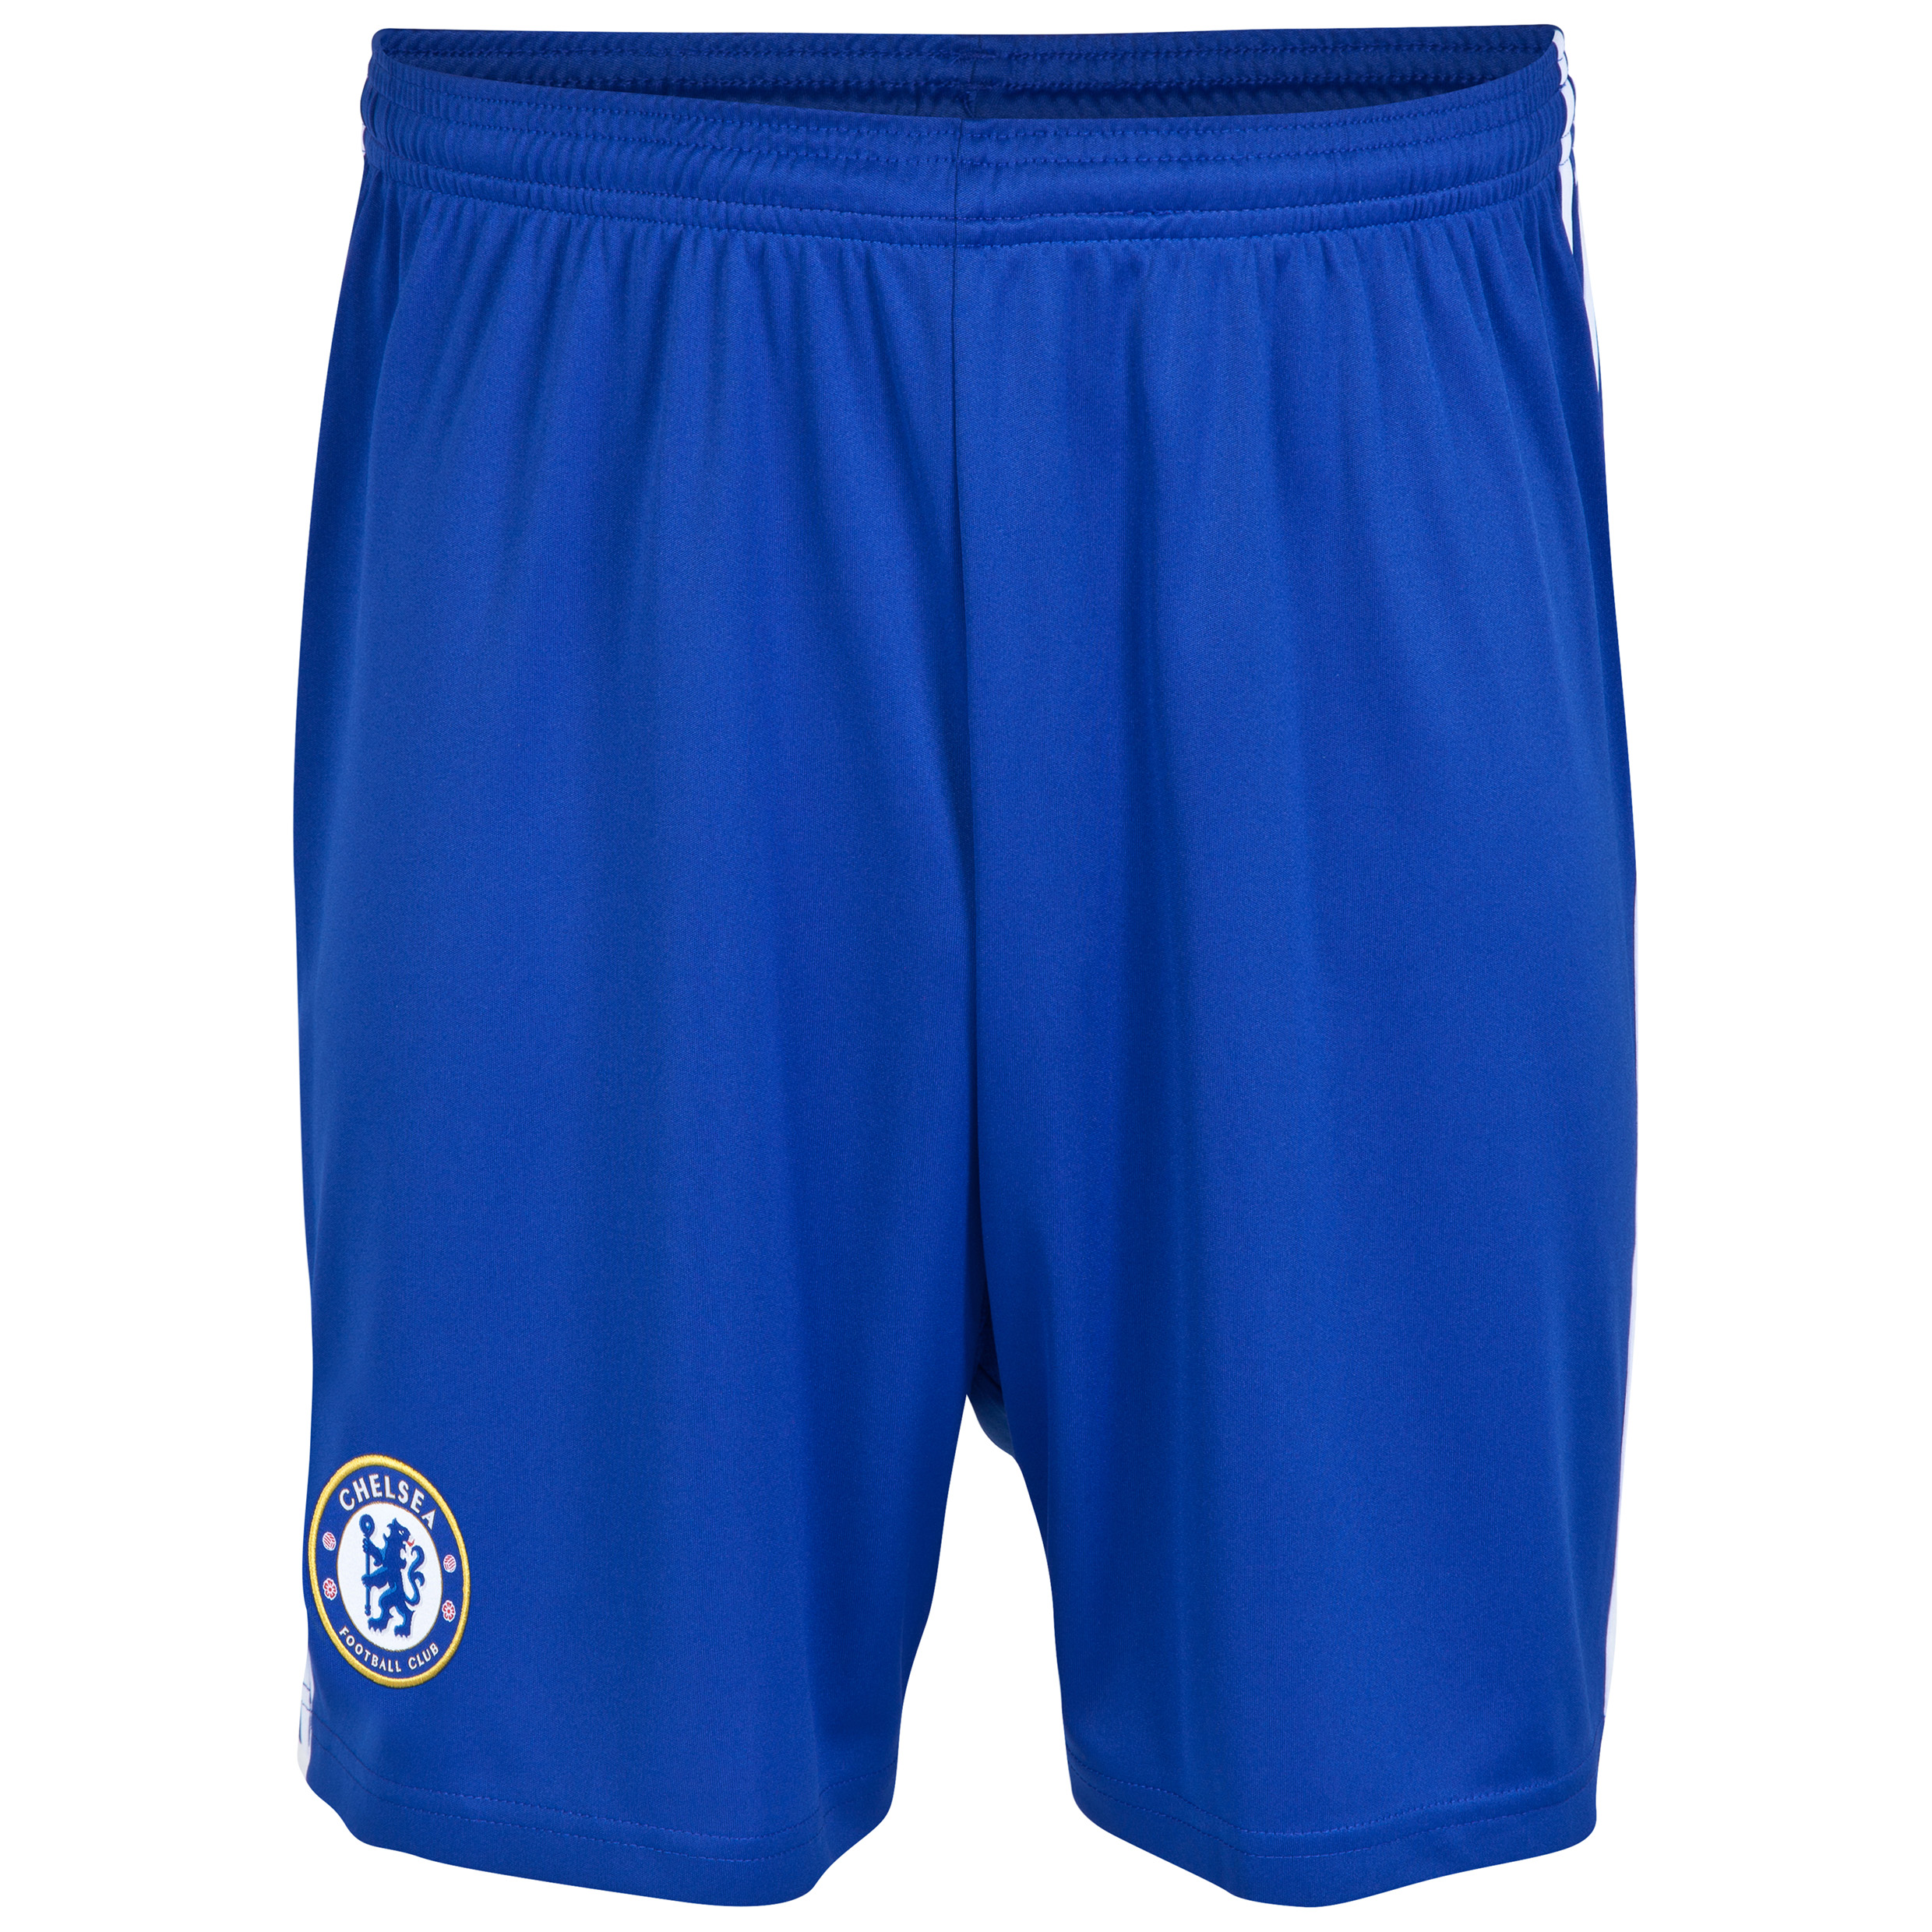 Chelsea Home Short 2014/15 - Kids Blue